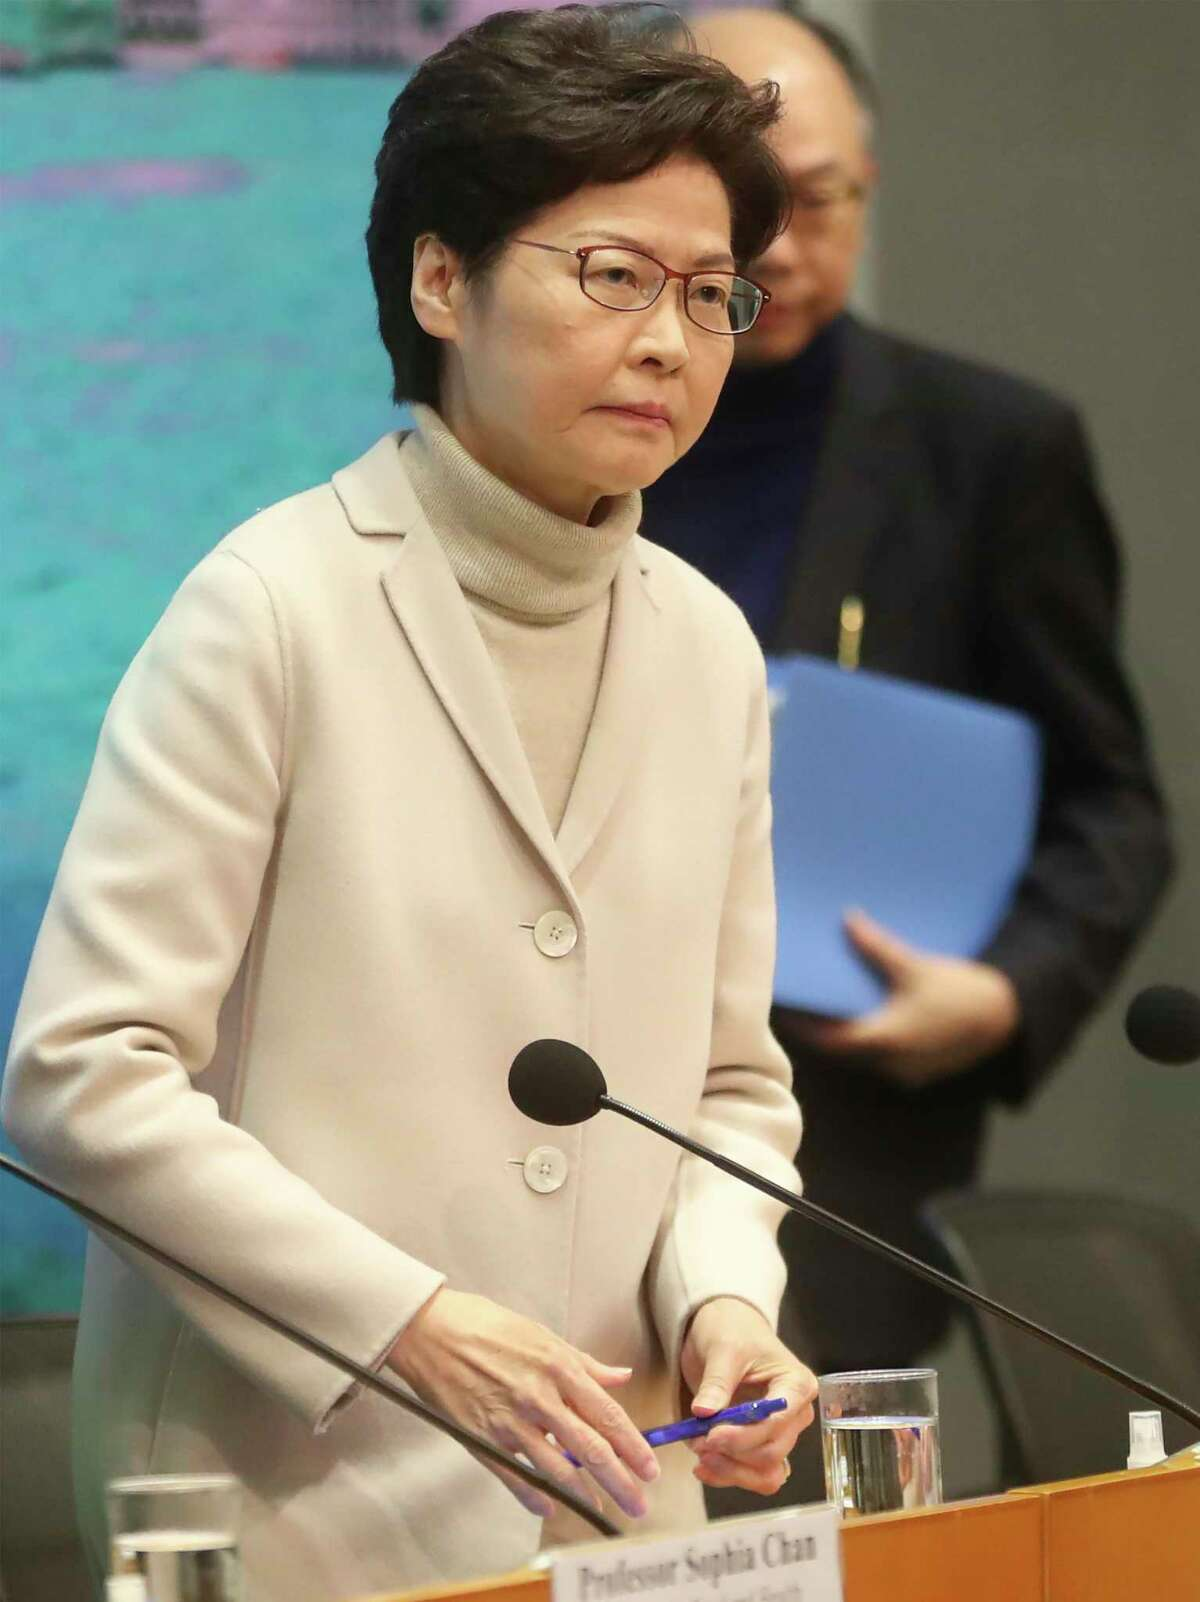 Hong Kong Chief Executive Carrie Lam prepare for a press conference in Hong Kong, Monday, Feb 3, 2020. Lam says the city will shut almost all land and sea border control points to the mainland from midnight to stem the spread of the novel coronavirus from China. (AP Photo/Achmad Ibrahim)